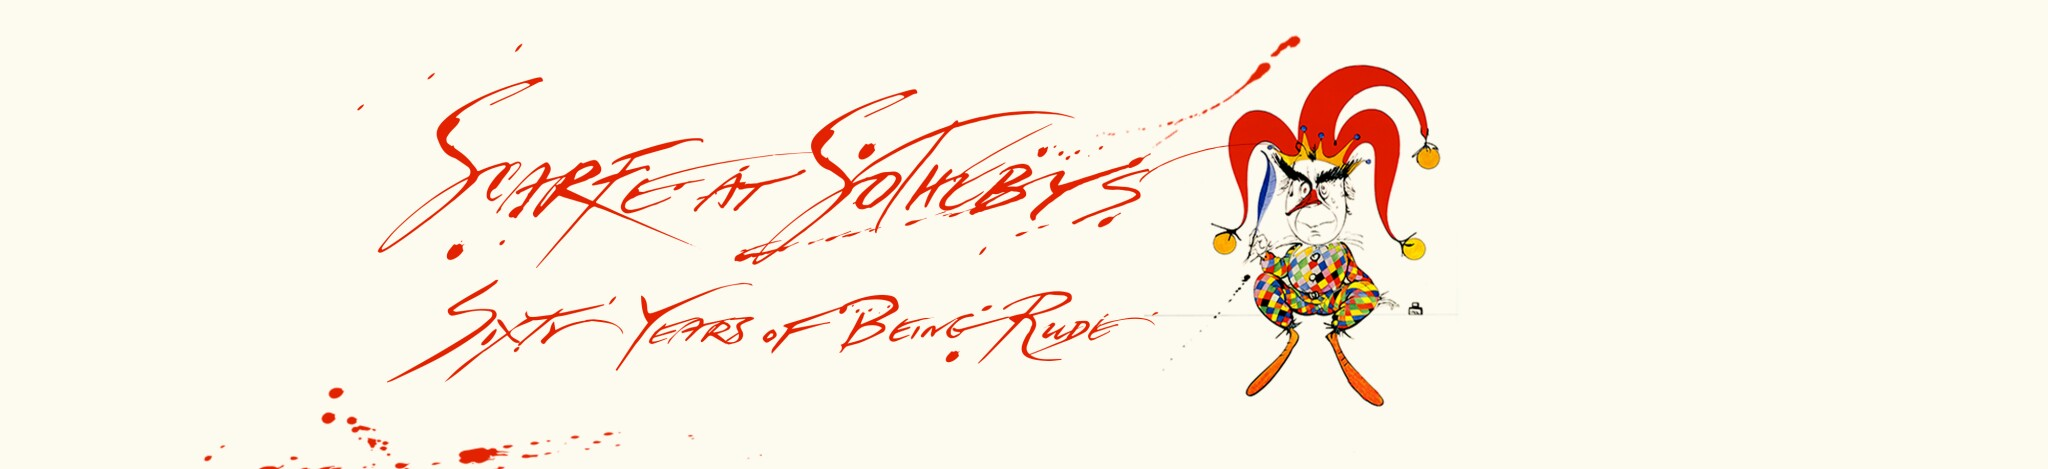 Scarfe at Sotheby's: Sixty Years of Being Rude